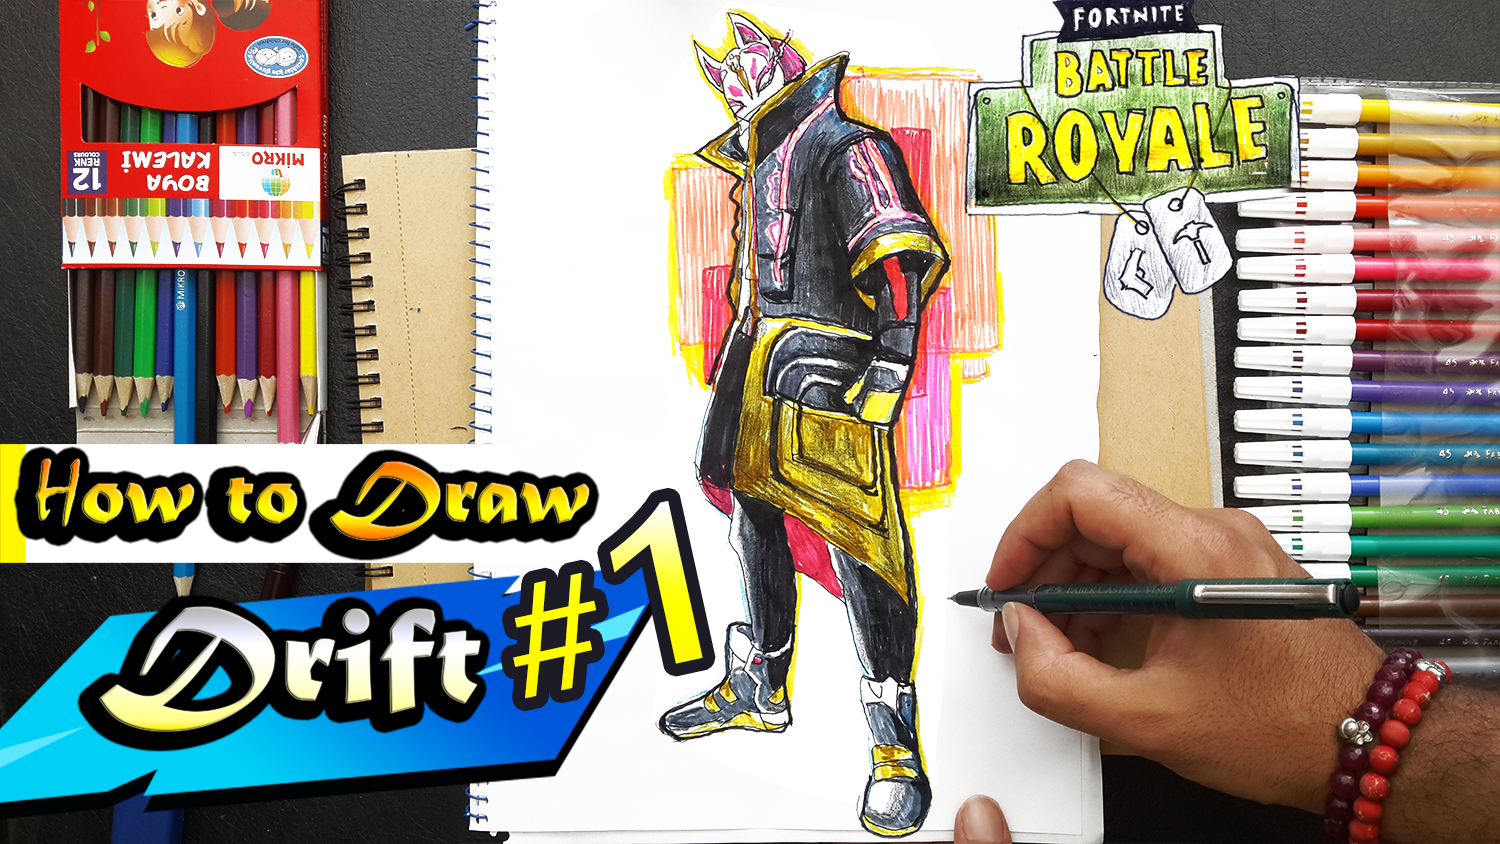 How To Draw Drift Fortnite